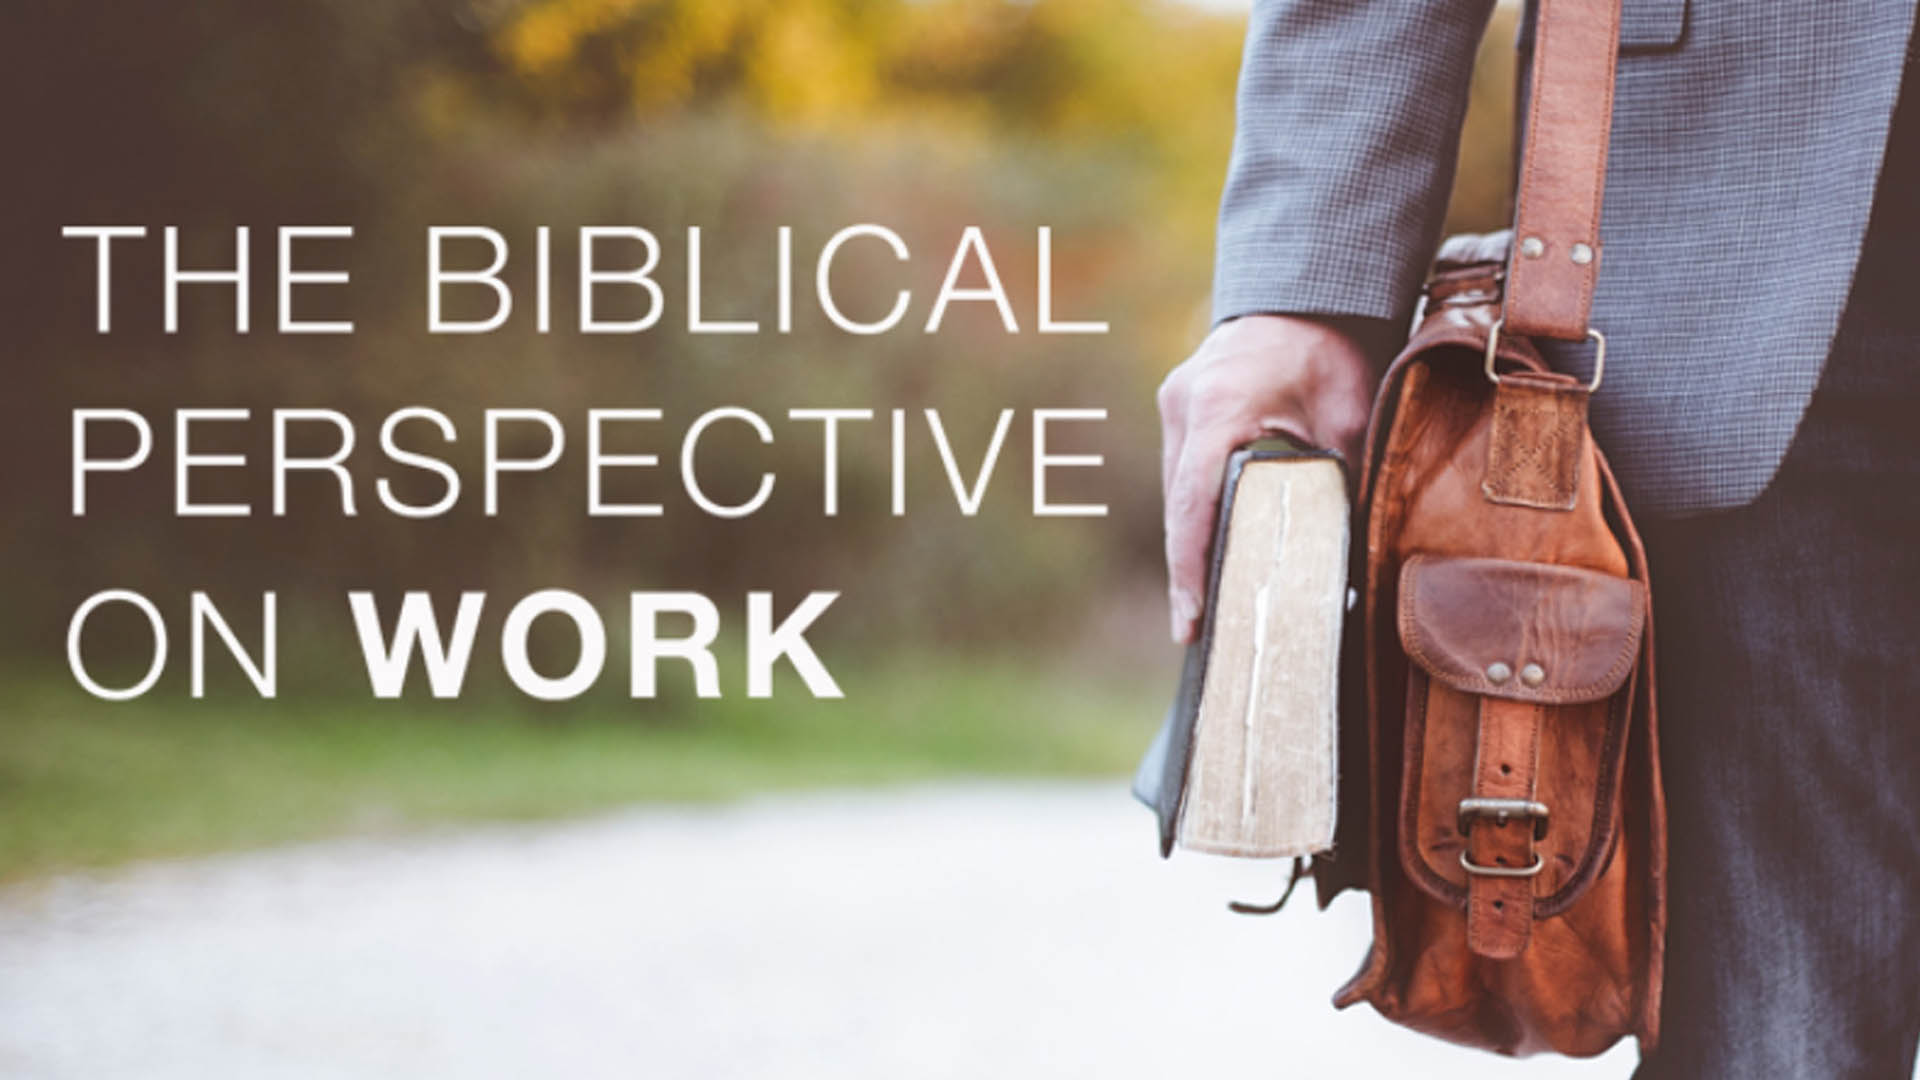 The Biblical Perspective on Work